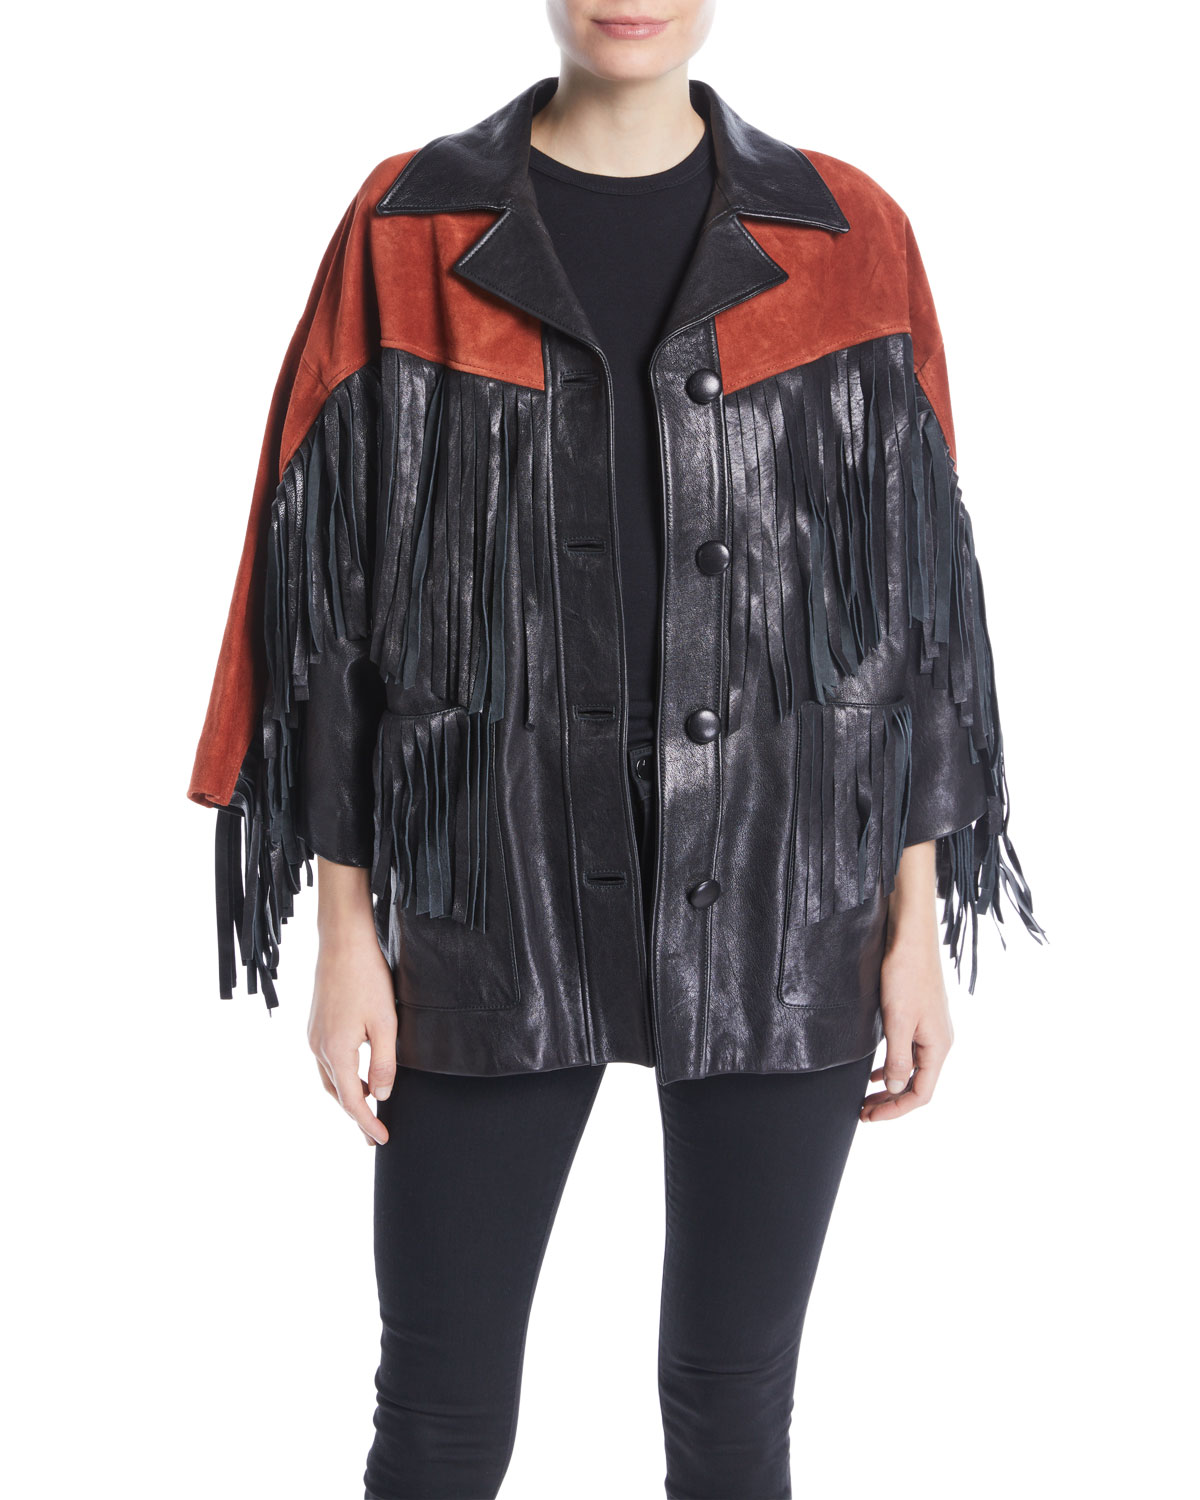 772c45943ff7 Gucci Grainy Leather Jacket with Suede Fringe   Studded Guccy on ...